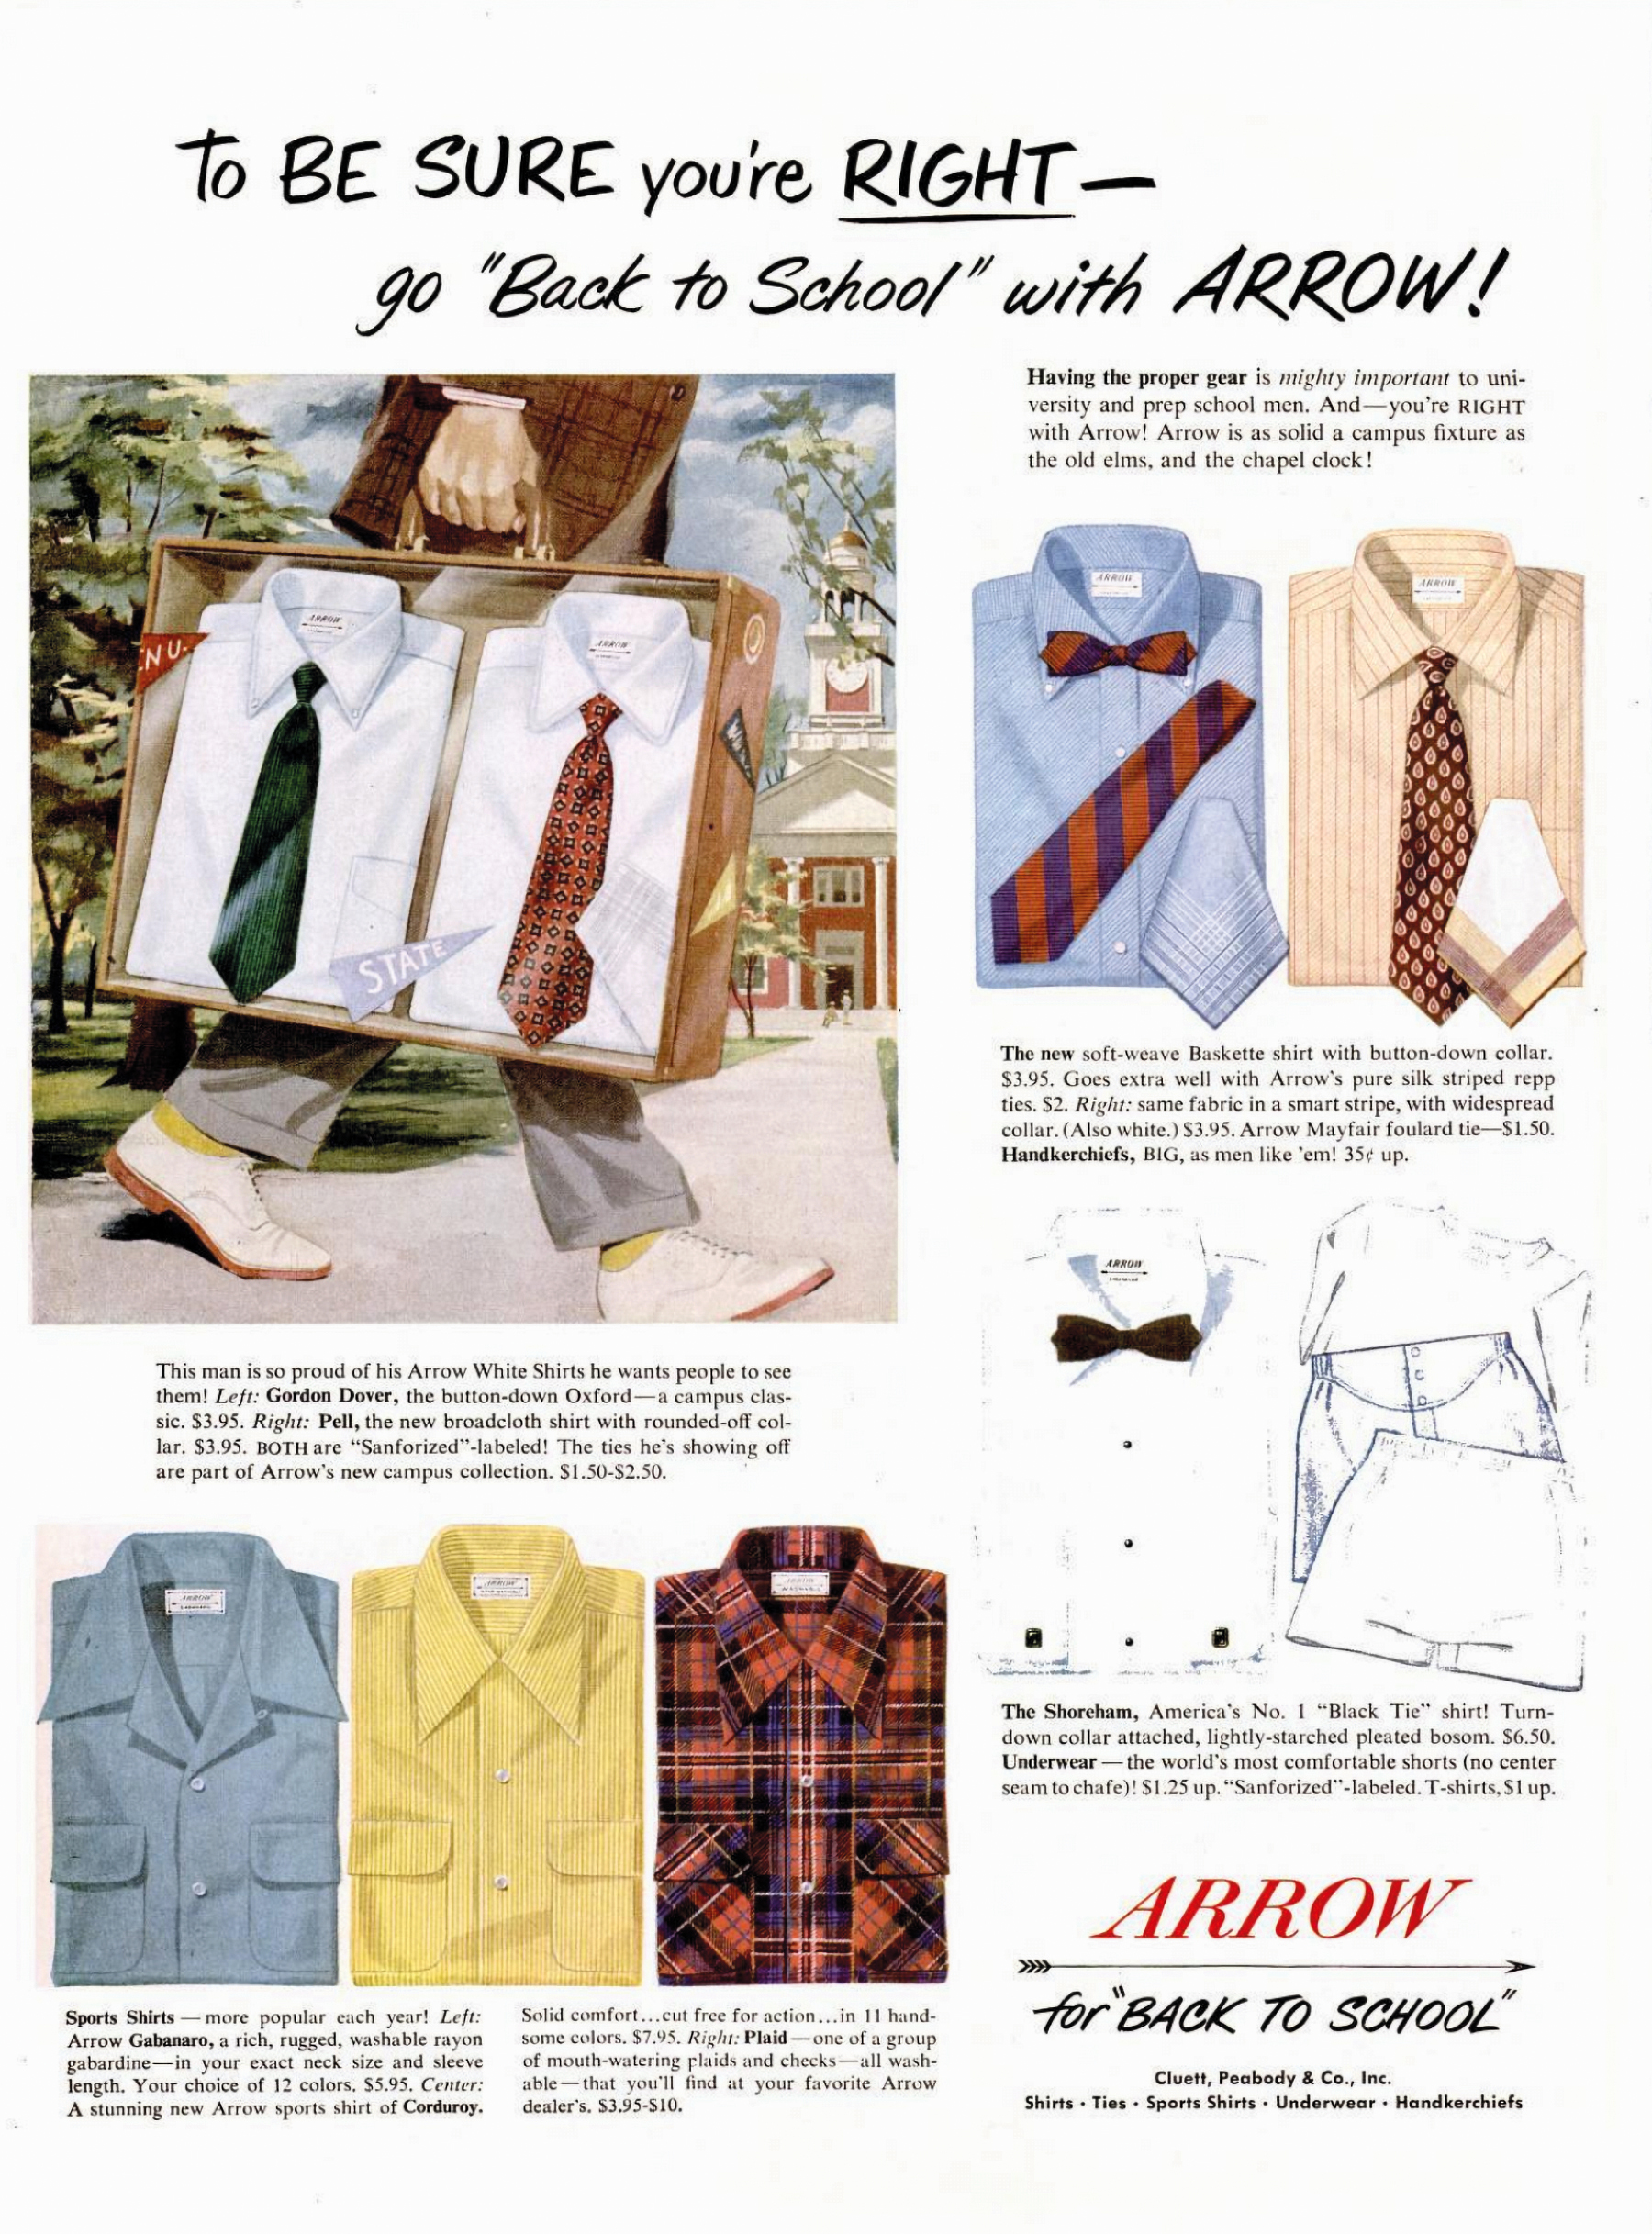 Fashion that's as straight as an arrow | AdAge